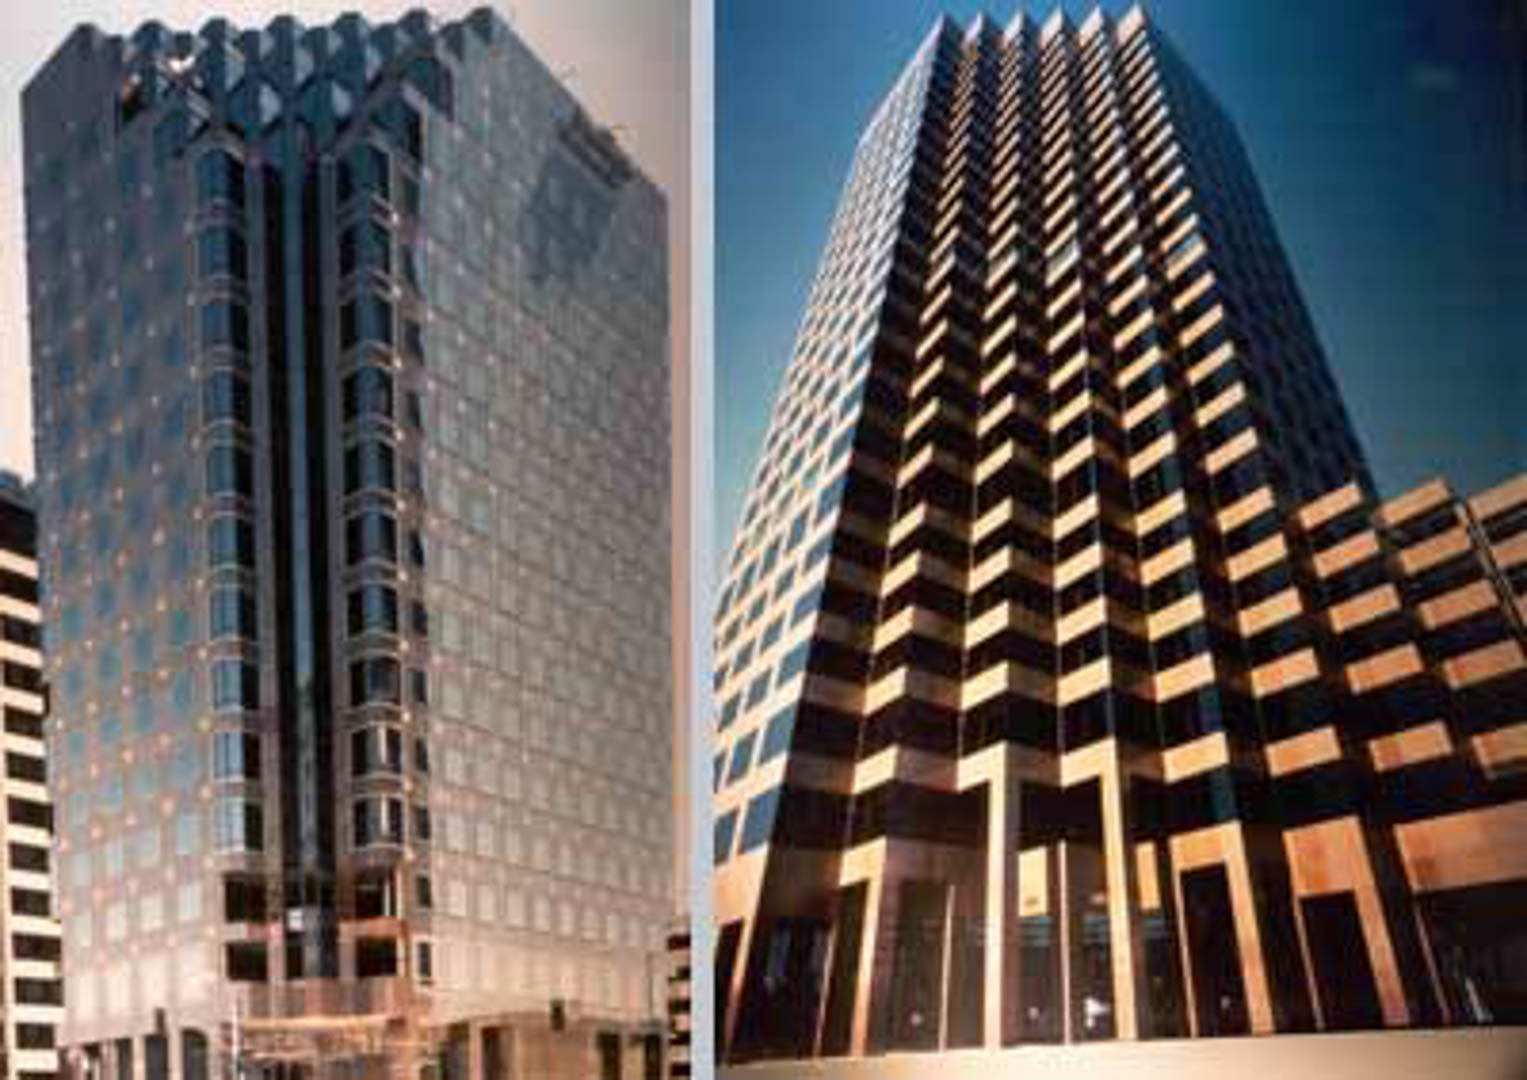 Project:  Wilshire Landmark   Location:  Los Angeles, California   Description:  The saw tooth Napoleon Red Granite facade of this 27-story high rise is a distinctive landmark along West Los Angeles' Wilshire Boulevard.